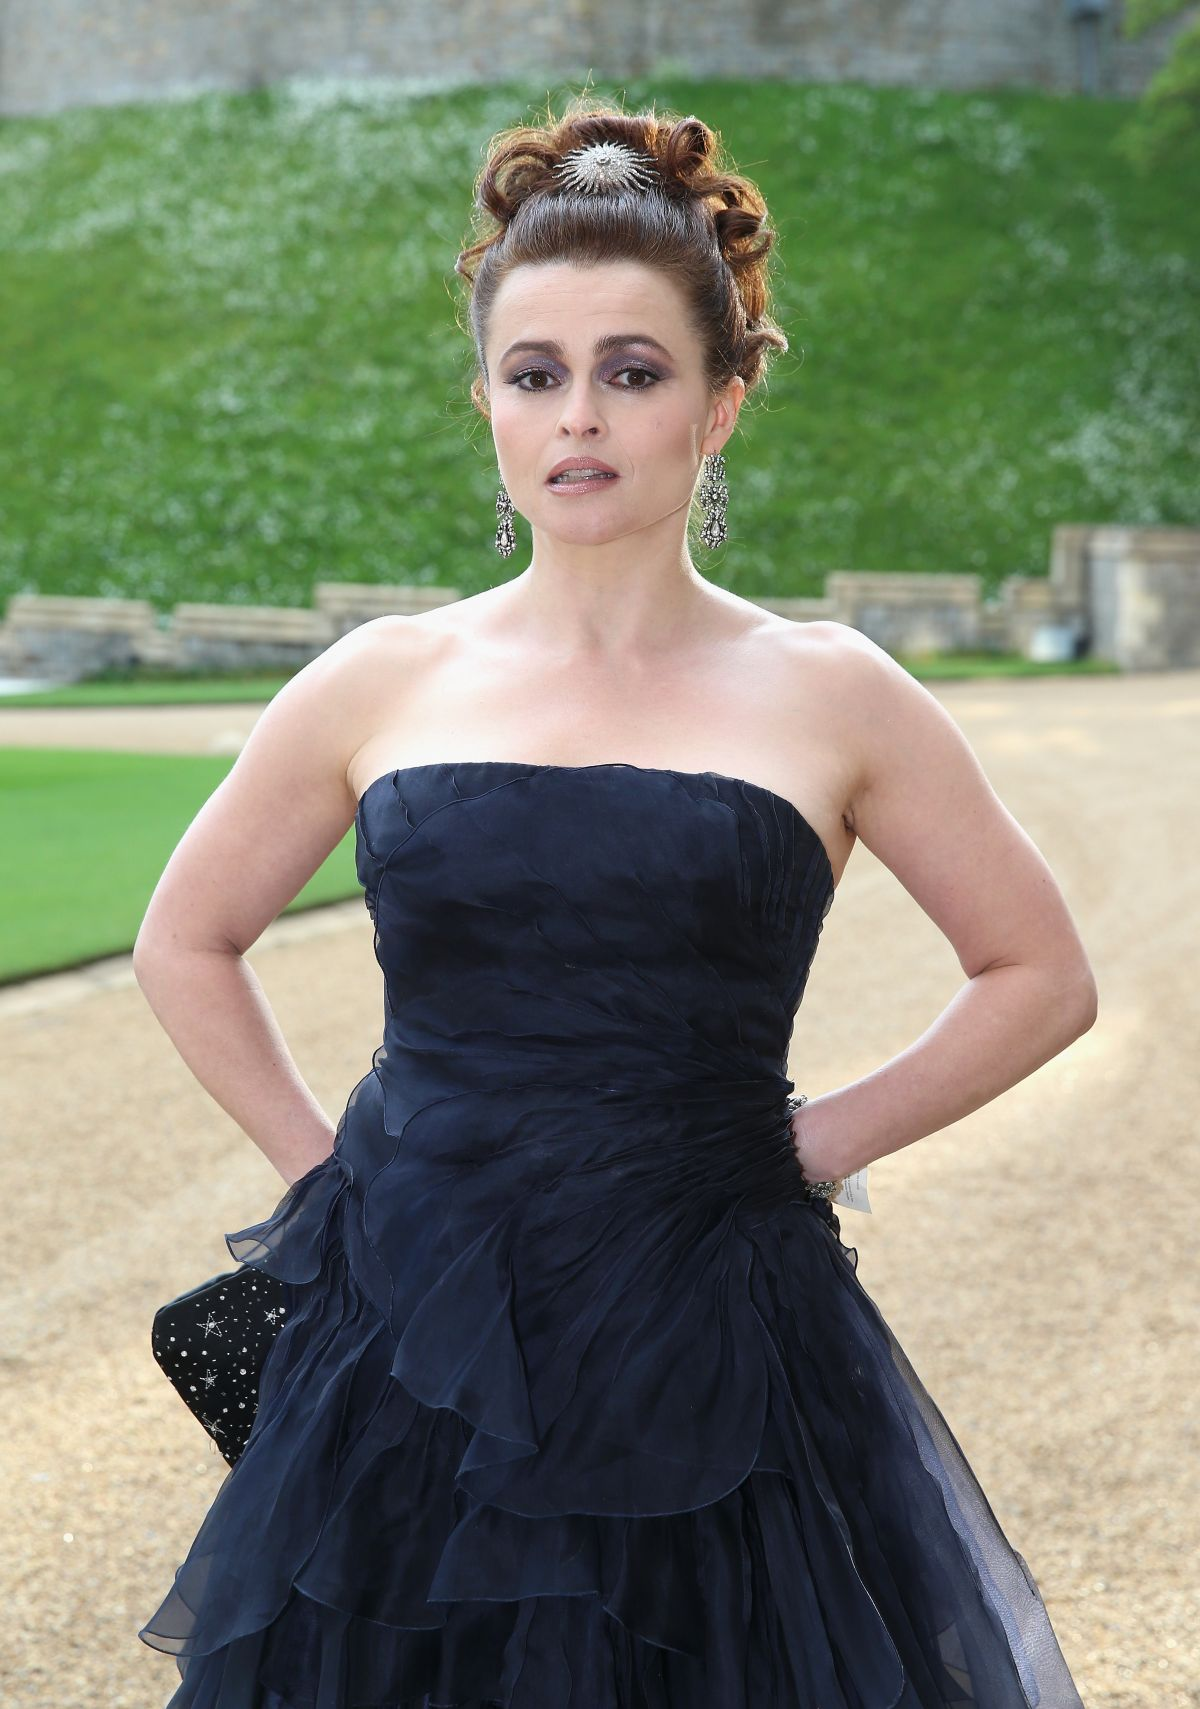 HELENA BONHAM CARTER Celebrating the Work of the Royal Marsden Hosted by the Duke of Cambridge